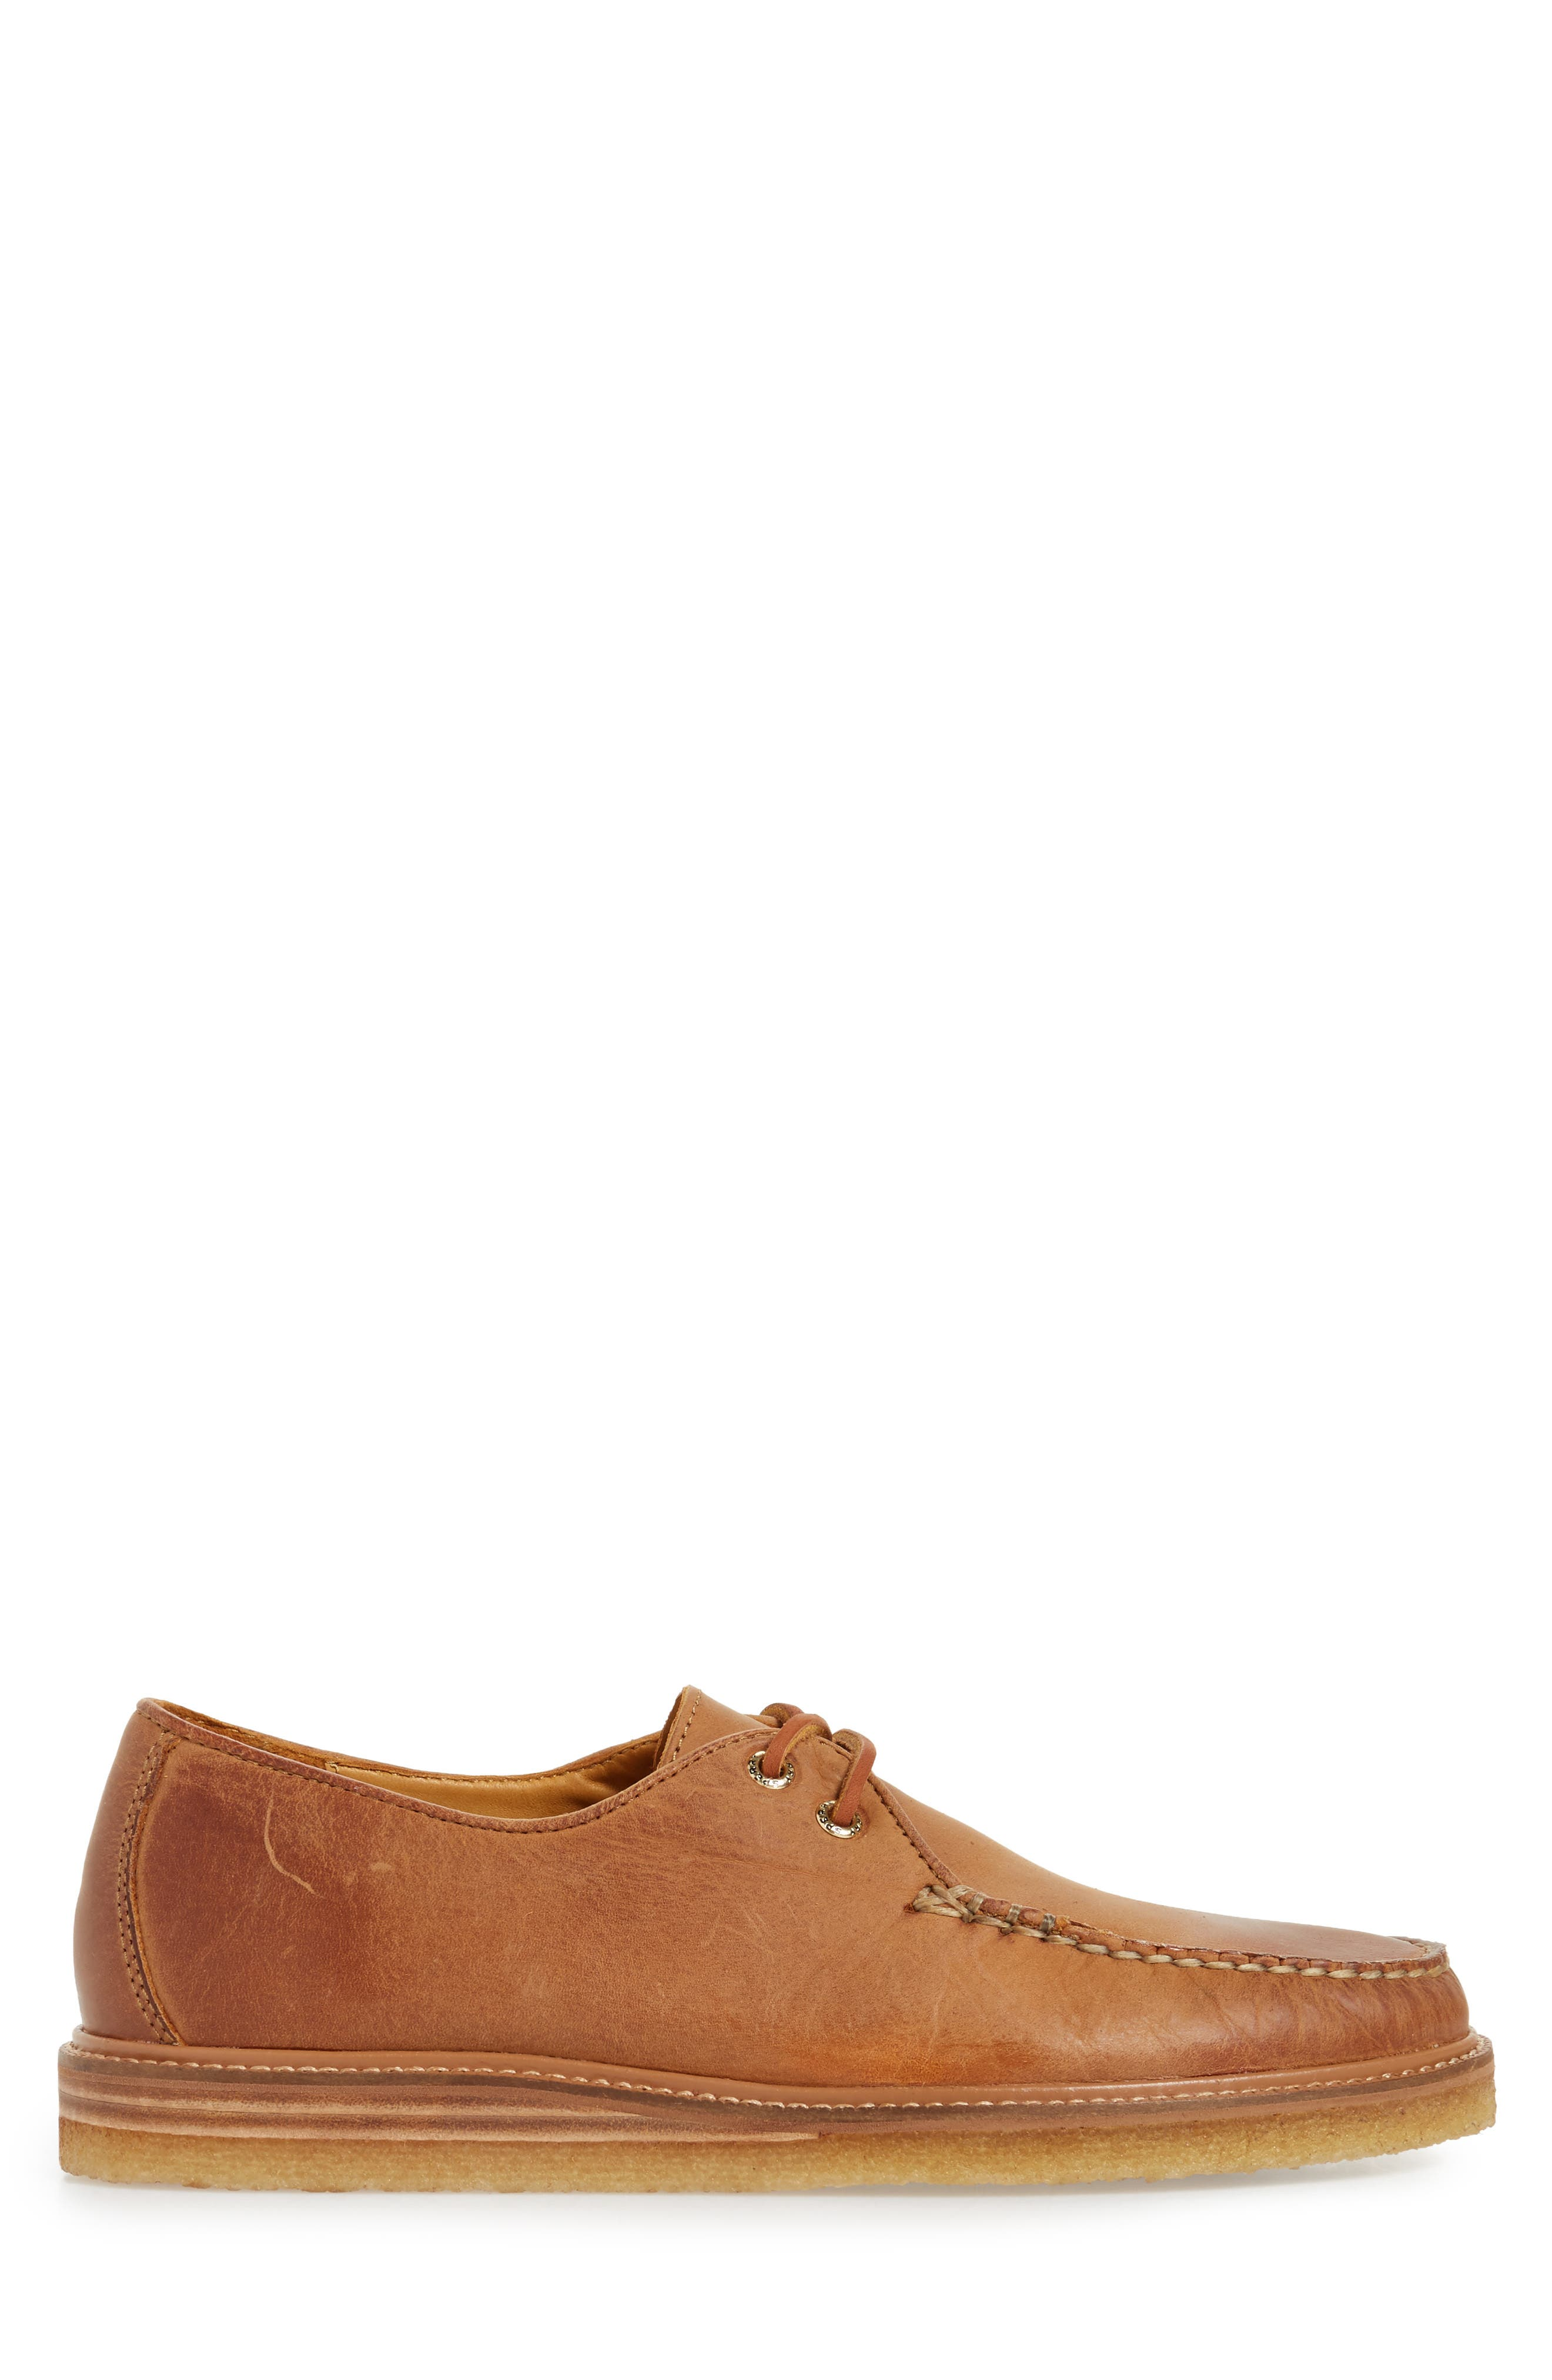 Gold Cup Captain's Crepe Sole Oxford,                             Alternate thumbnail 3, color,                             Tan Leather